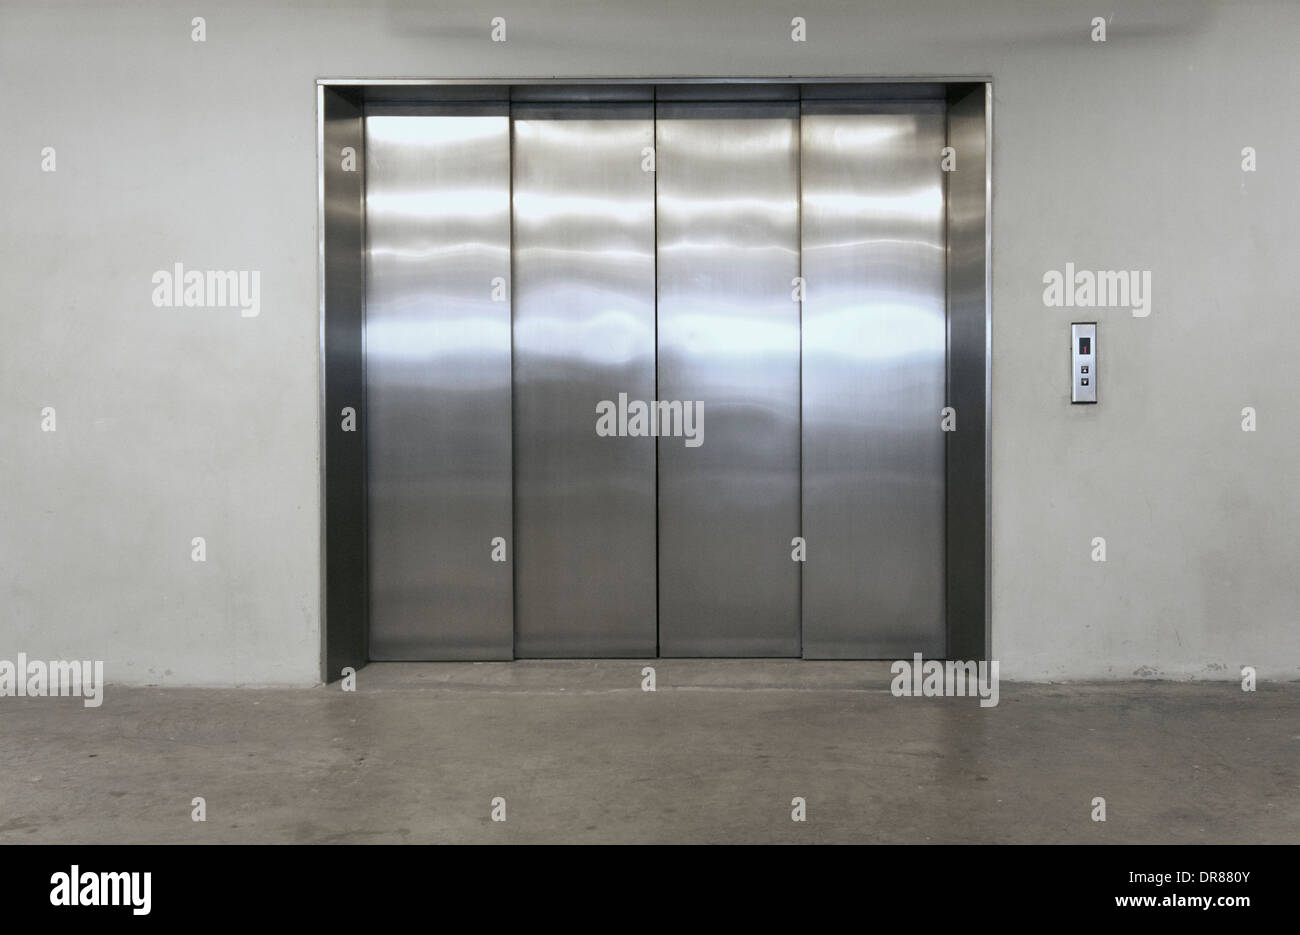 Modern elevator with closed doors - Stock Image